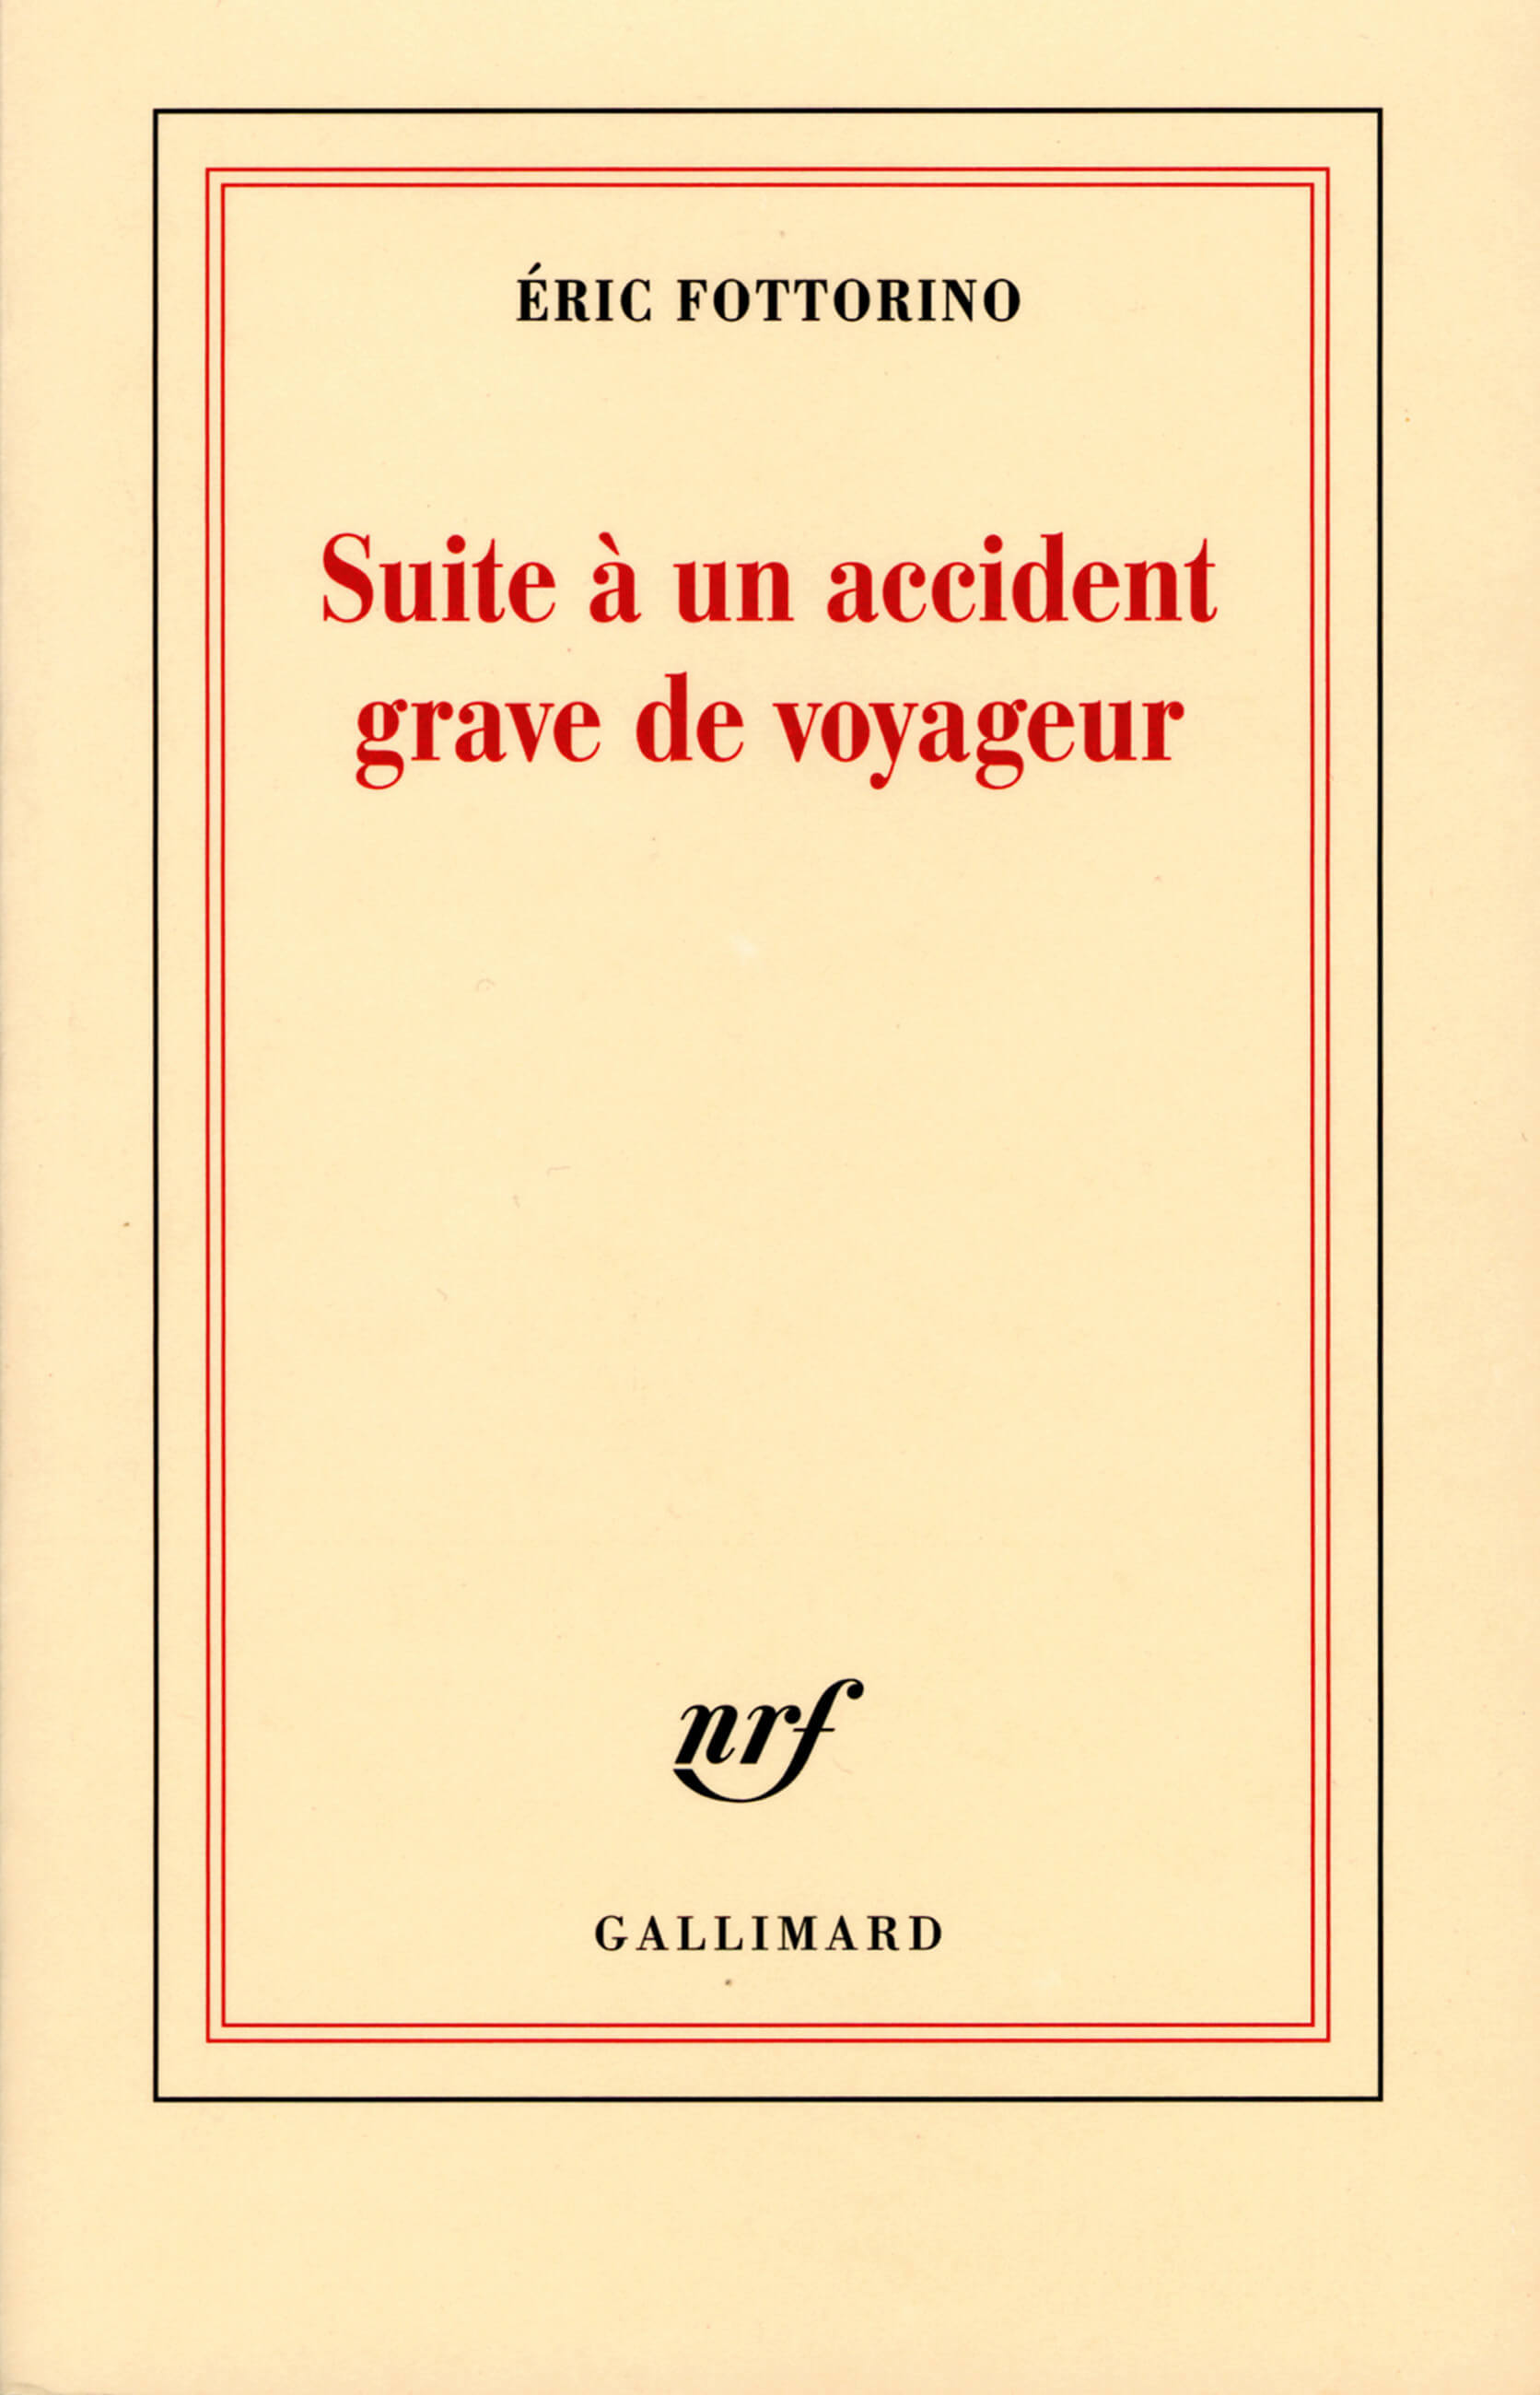 Éric FOTTORINO - Suite à un accident grave de voyageur - 1re de couverture - PDM 2013